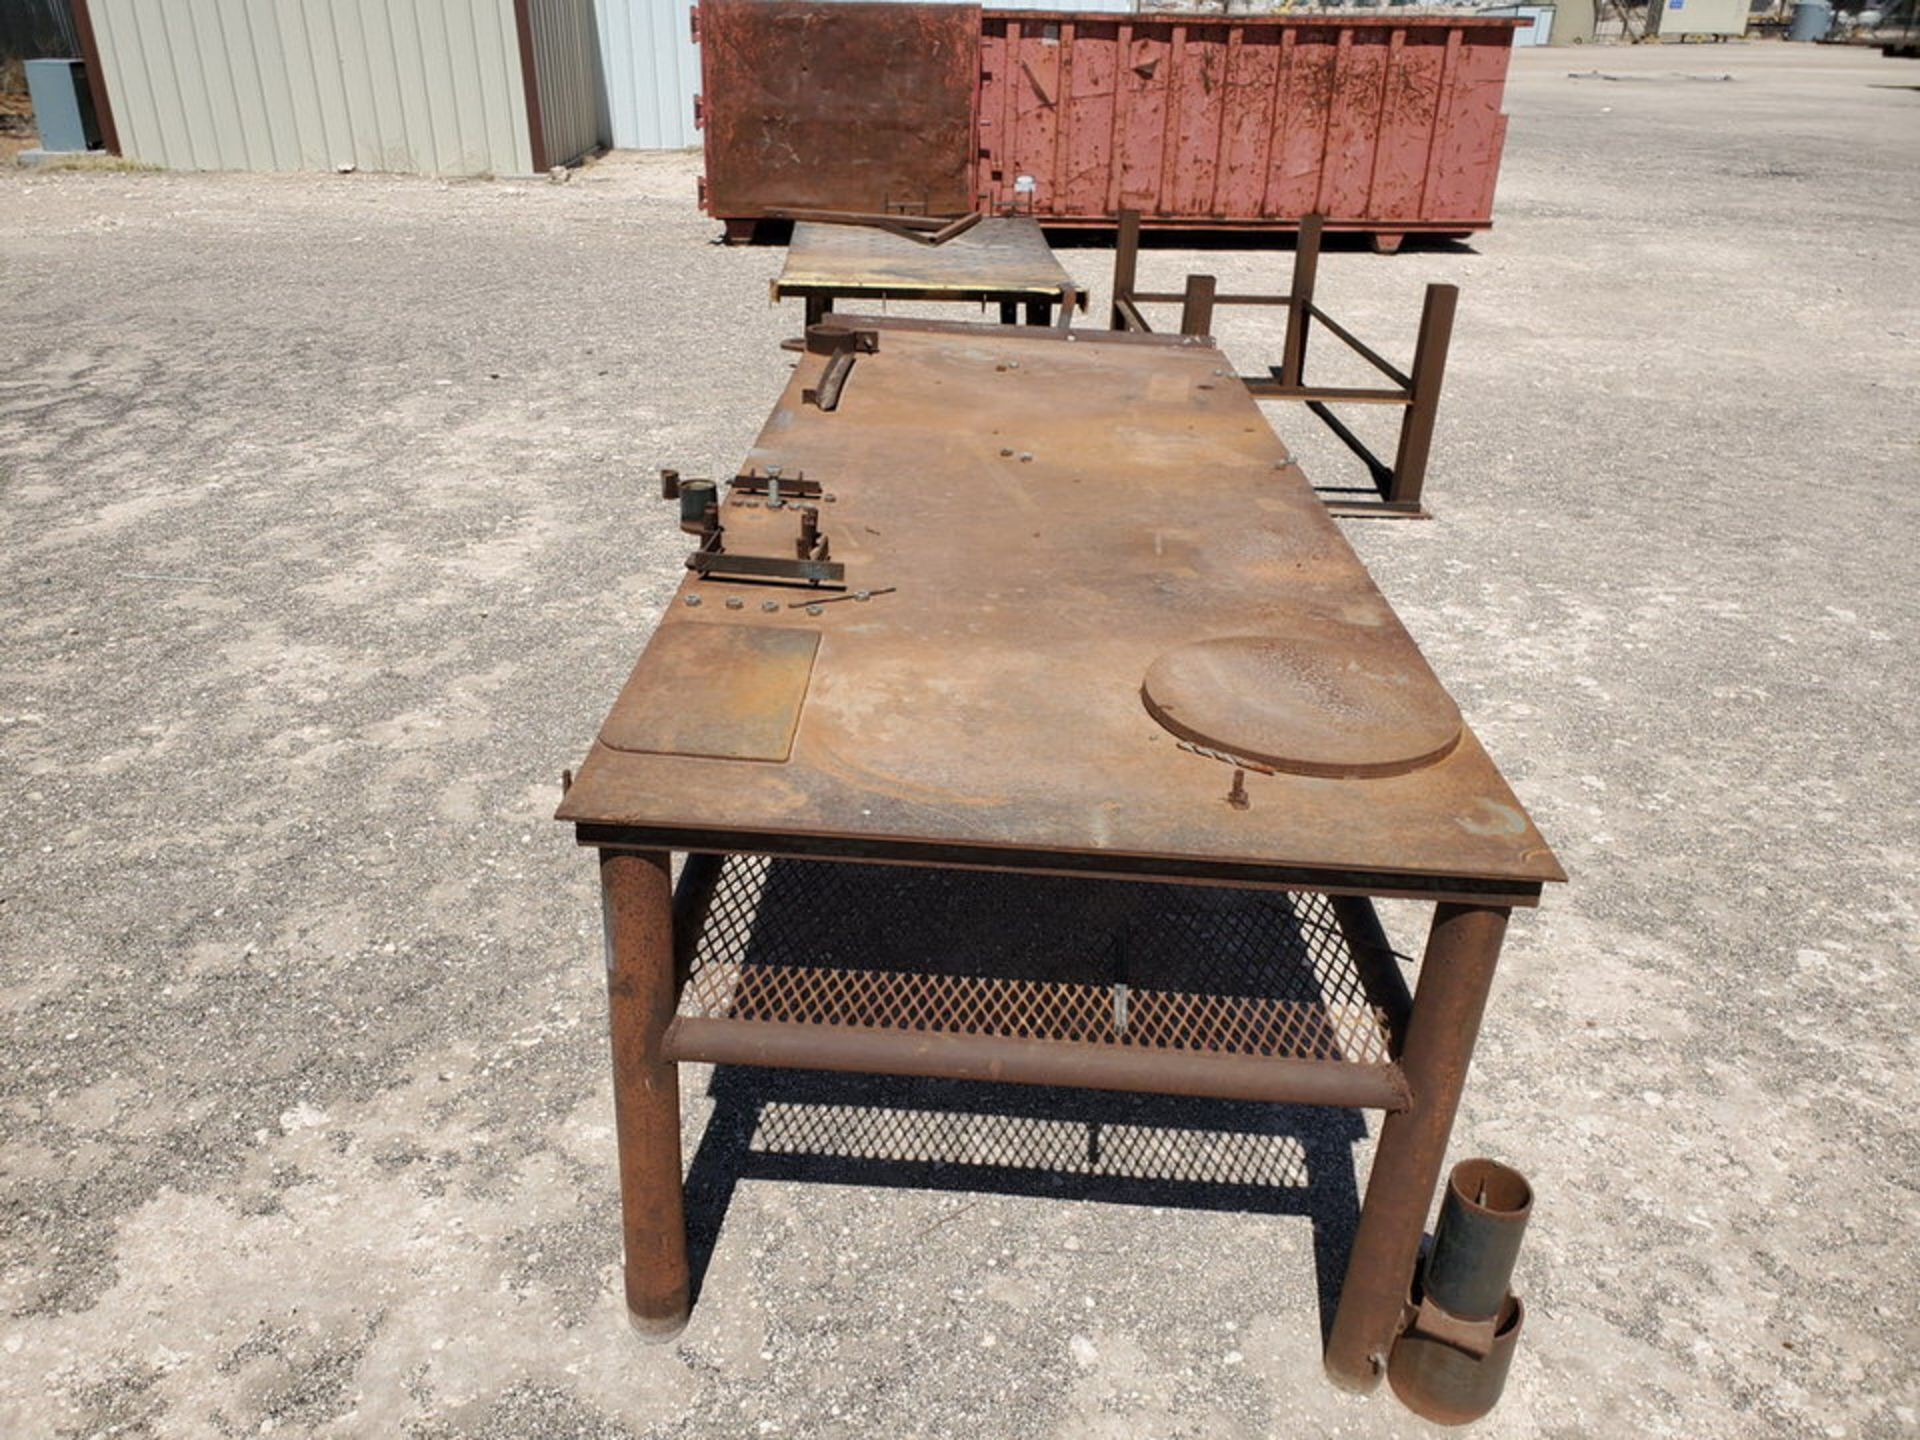 "(2) Welding Tables (1) 4' x 10'6"" x 3', (1) 48"" x 76"" x 32""; W/ Table Frame, 42"" x 78"" x 36"" - Image 3 of 8"